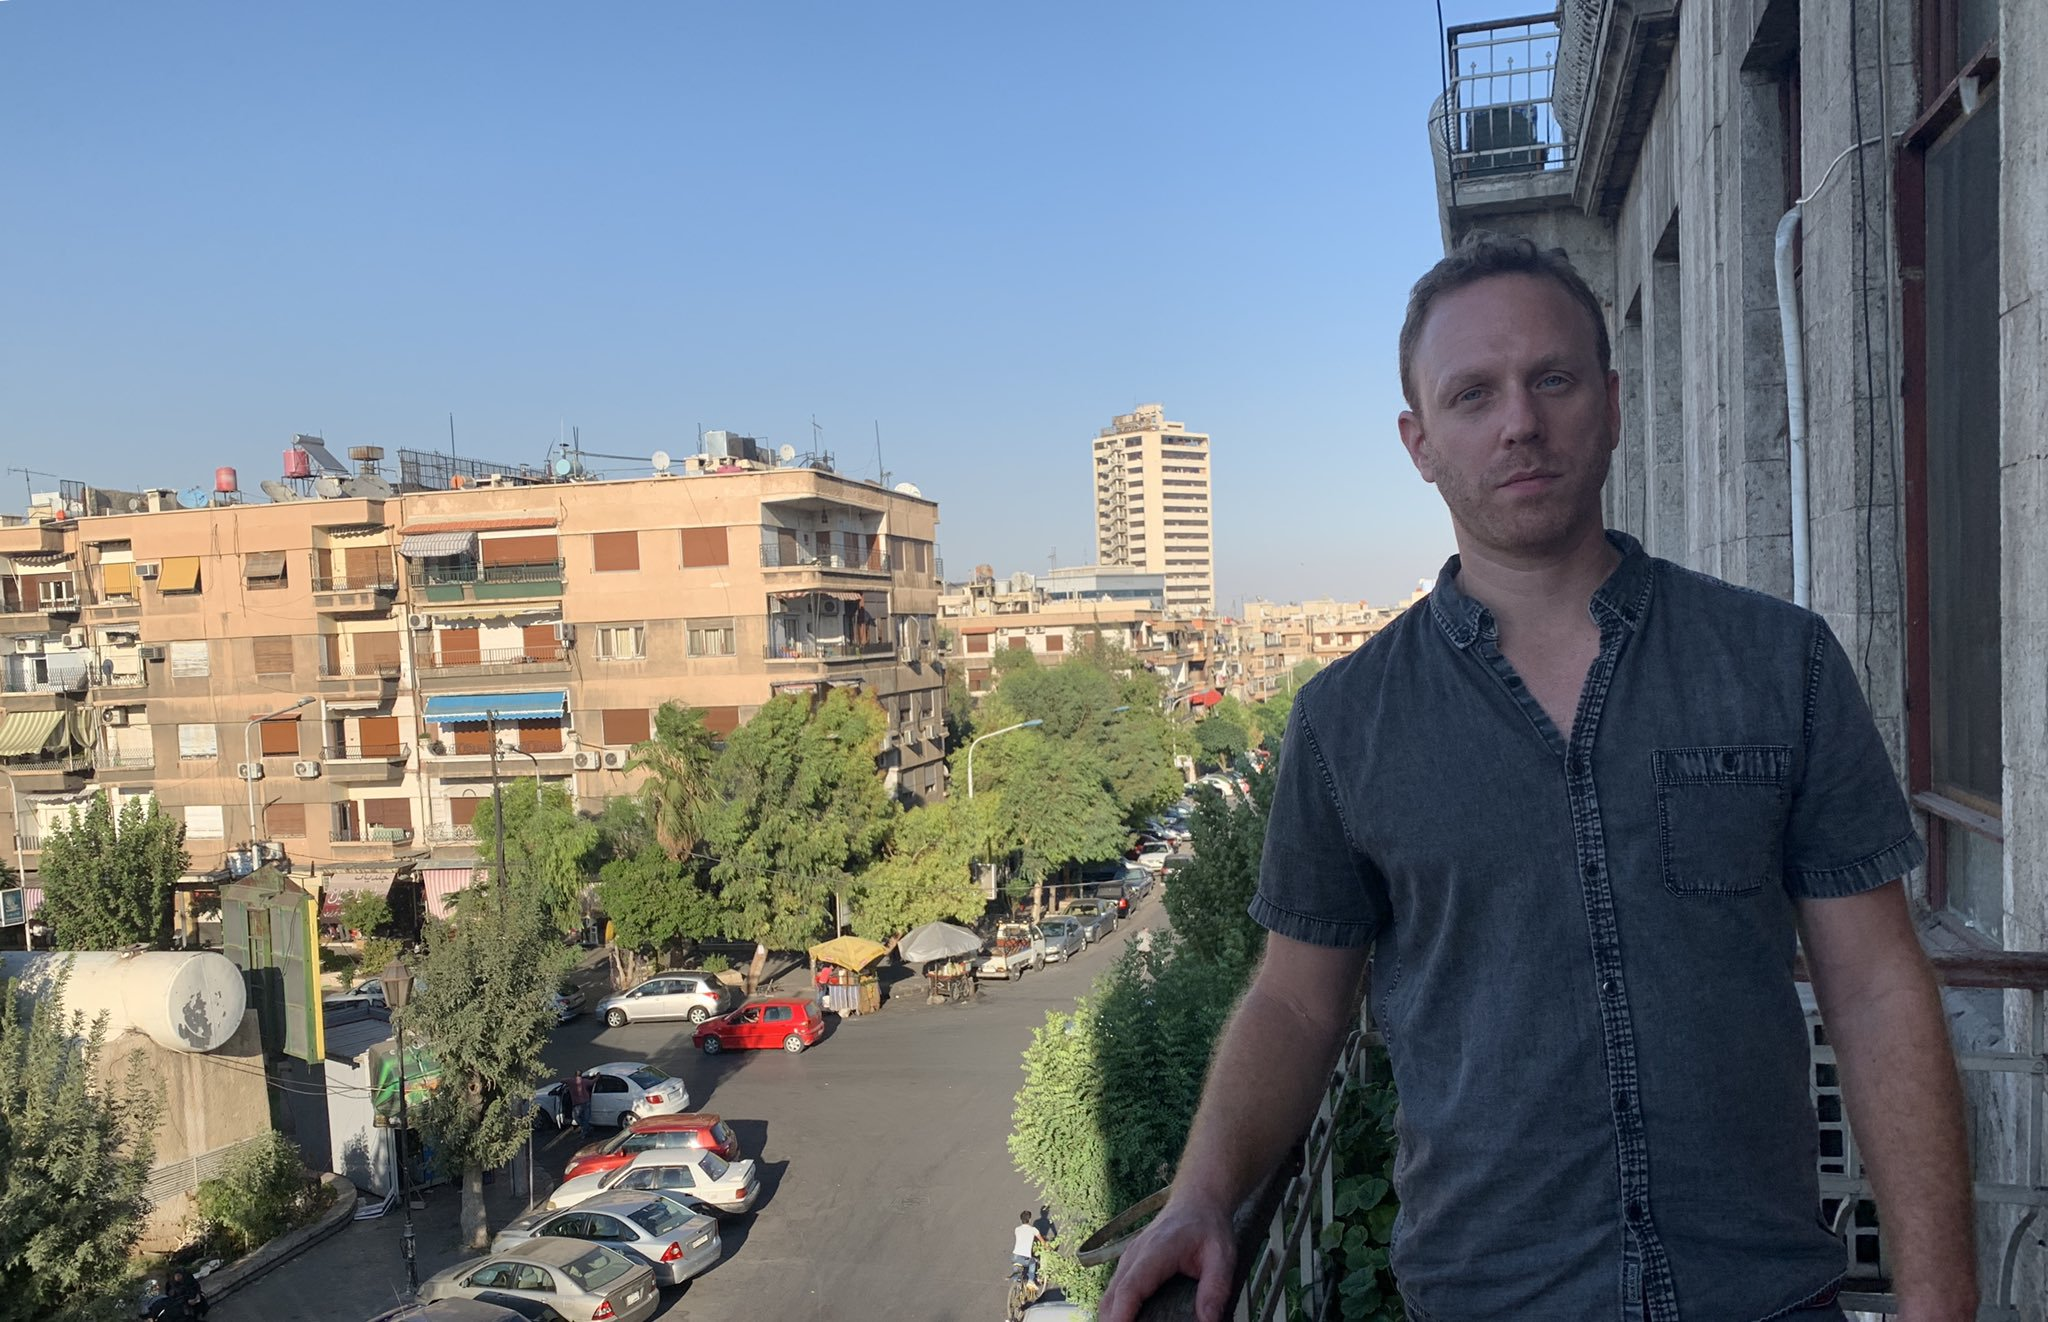 Journalist Max Blumenthal arrested by US authorities over 'phony' charges